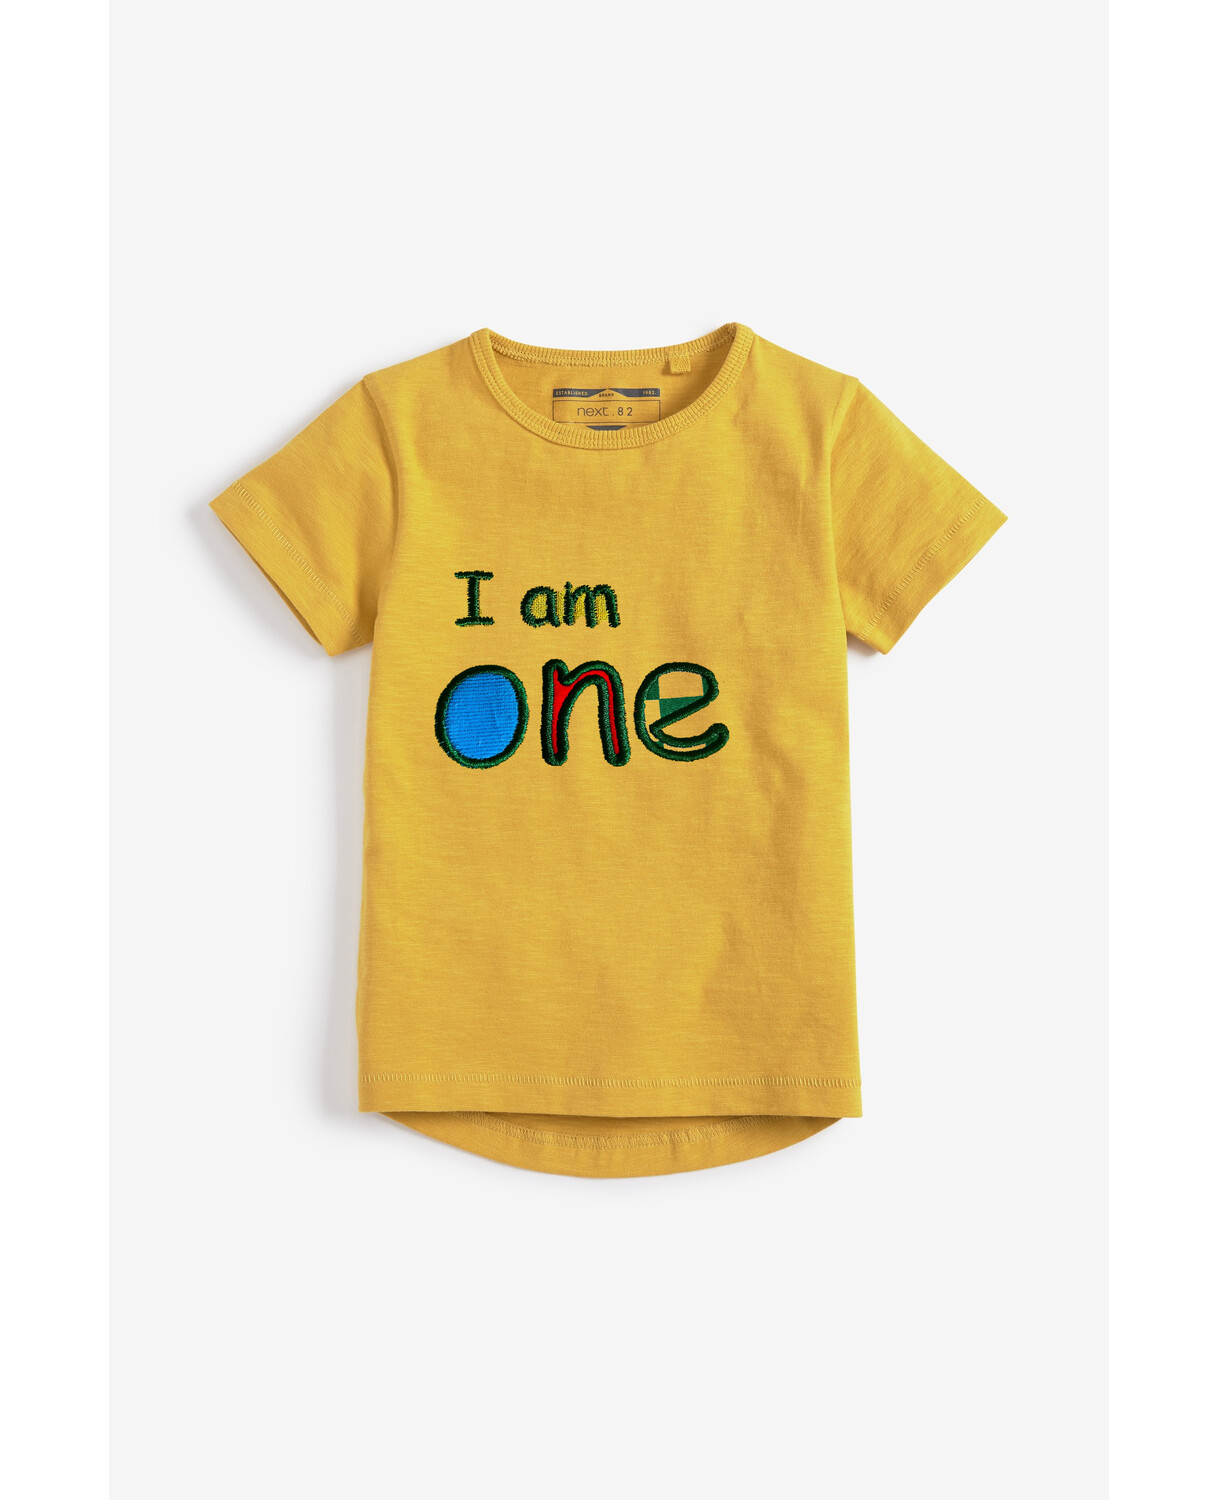 I am One Personalized Embroidered Short Sleeve Next Essential T-Shirt Cotton - 1st Birthday (Front and Back design)